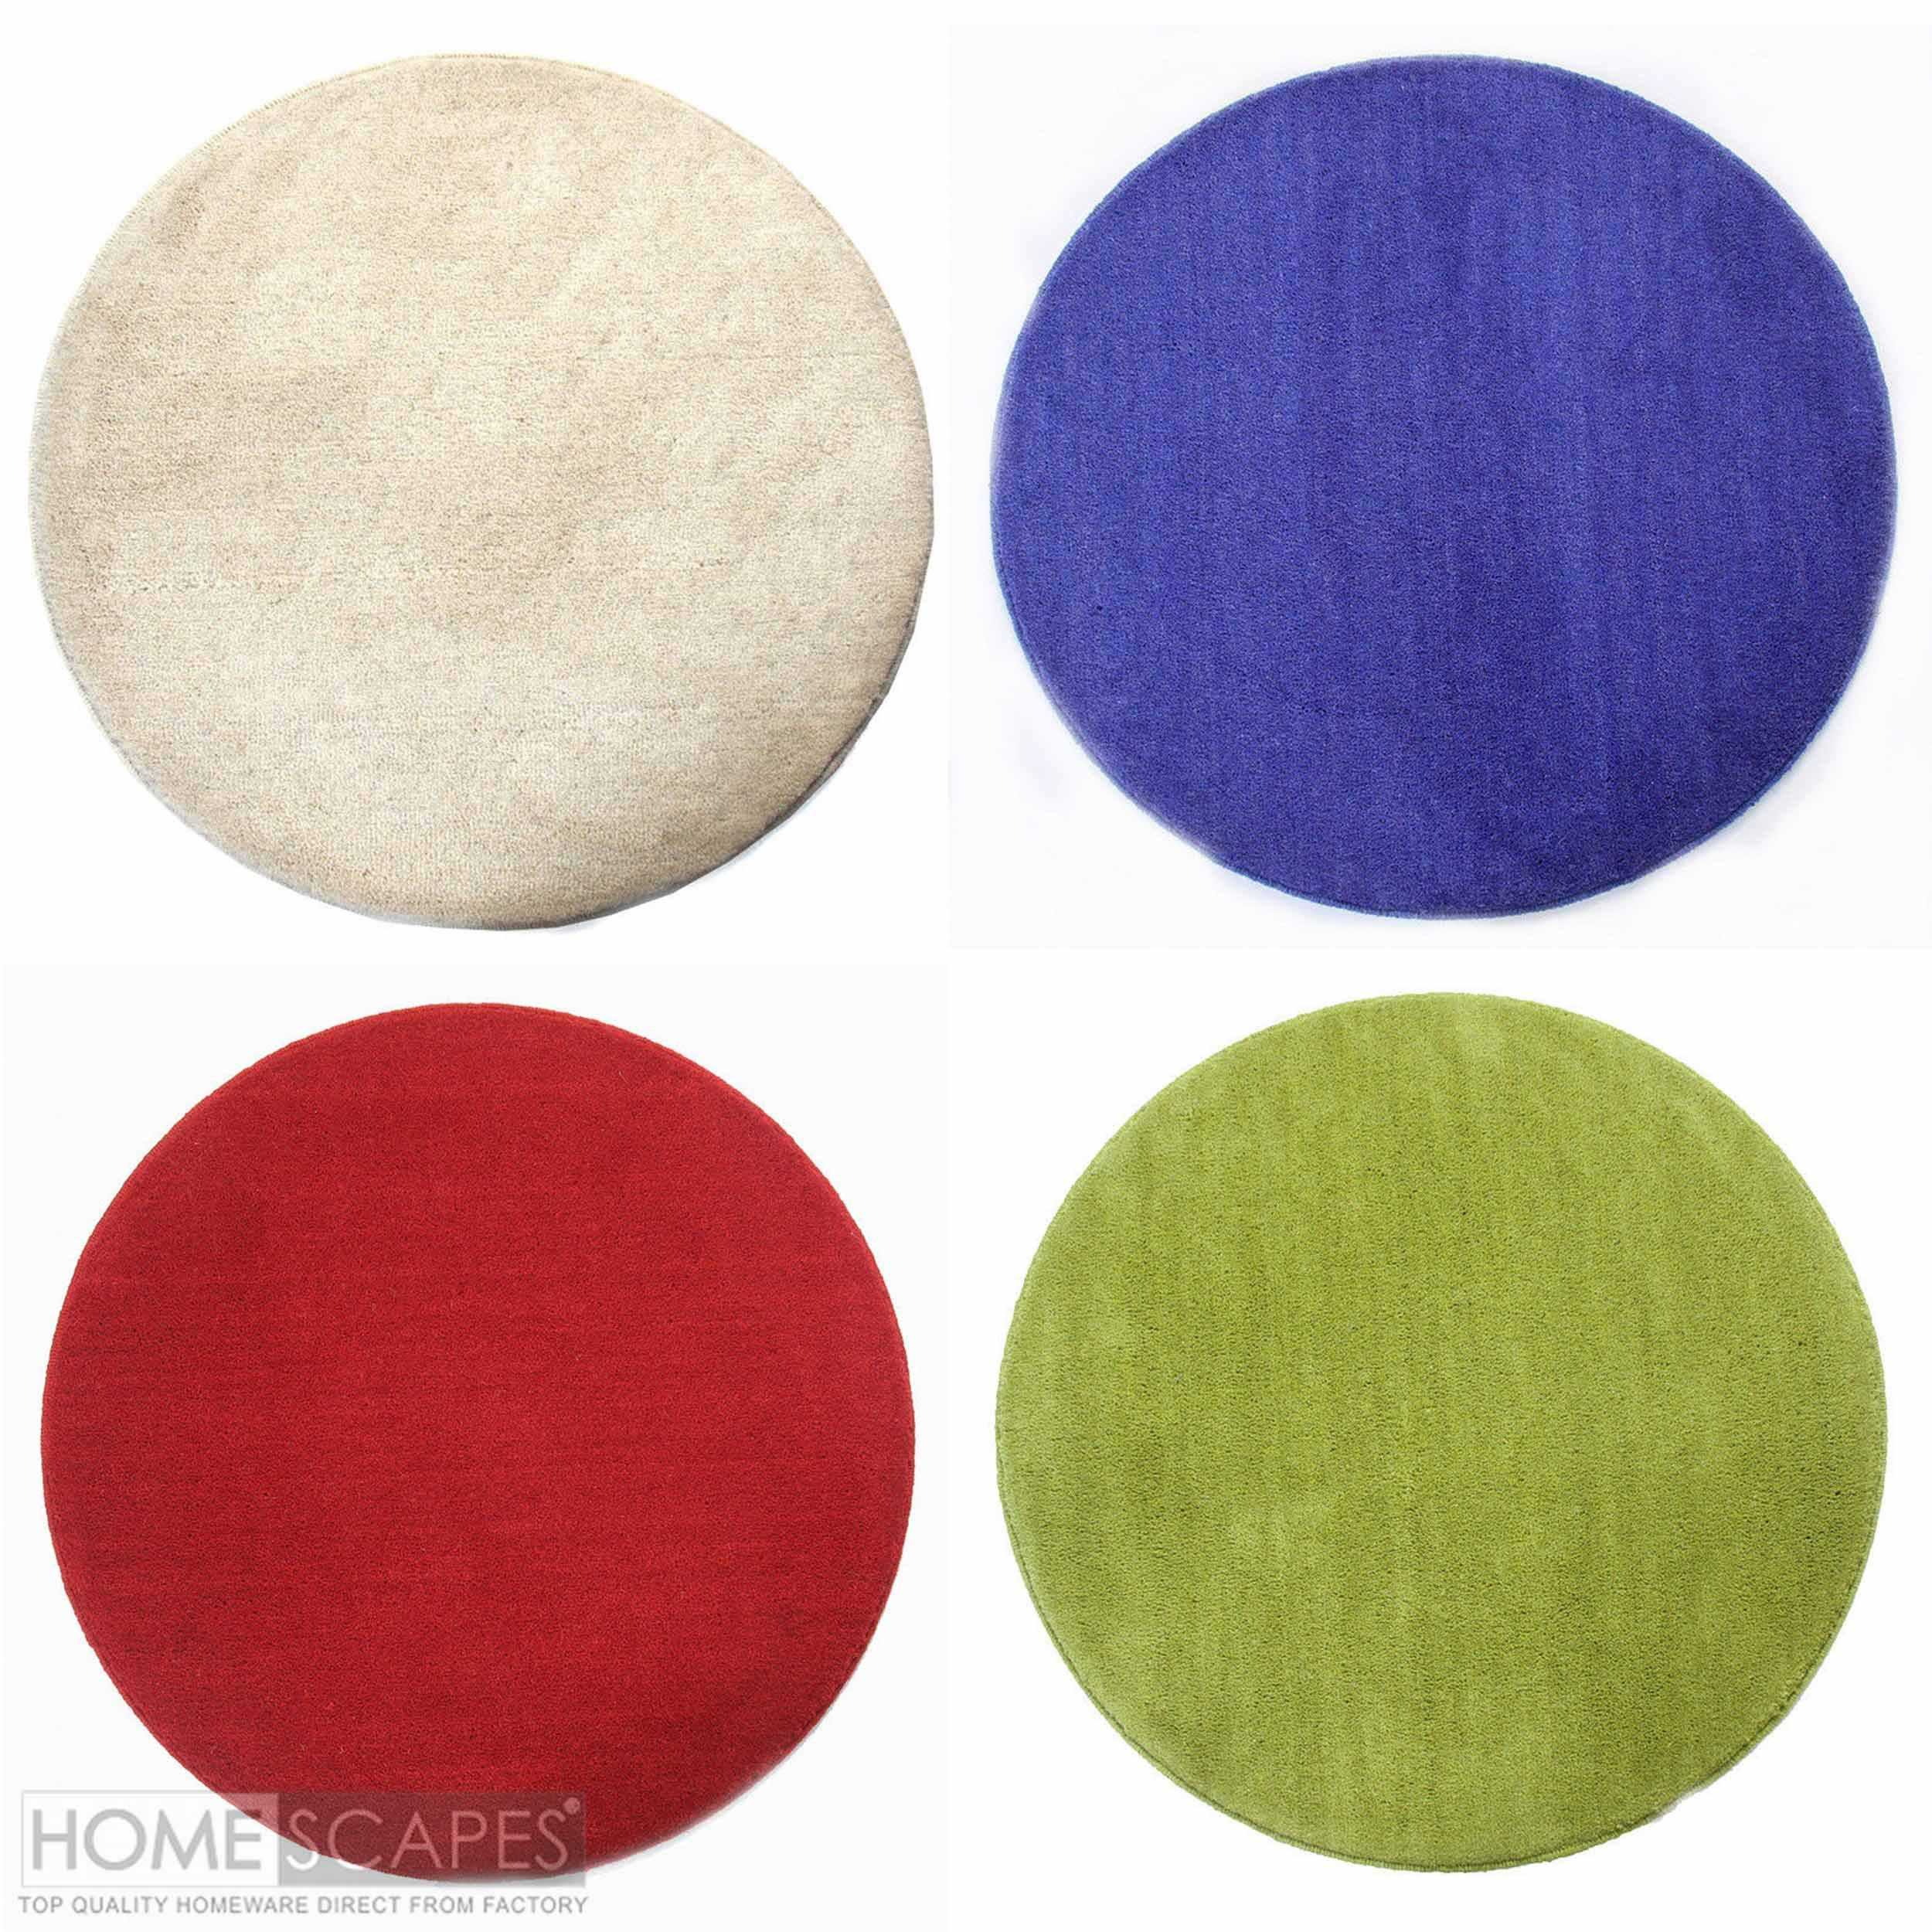 Circular Wool Rugs Roselawnlutheran Intended For Circular Wool Rugs (Image 2 of 15)